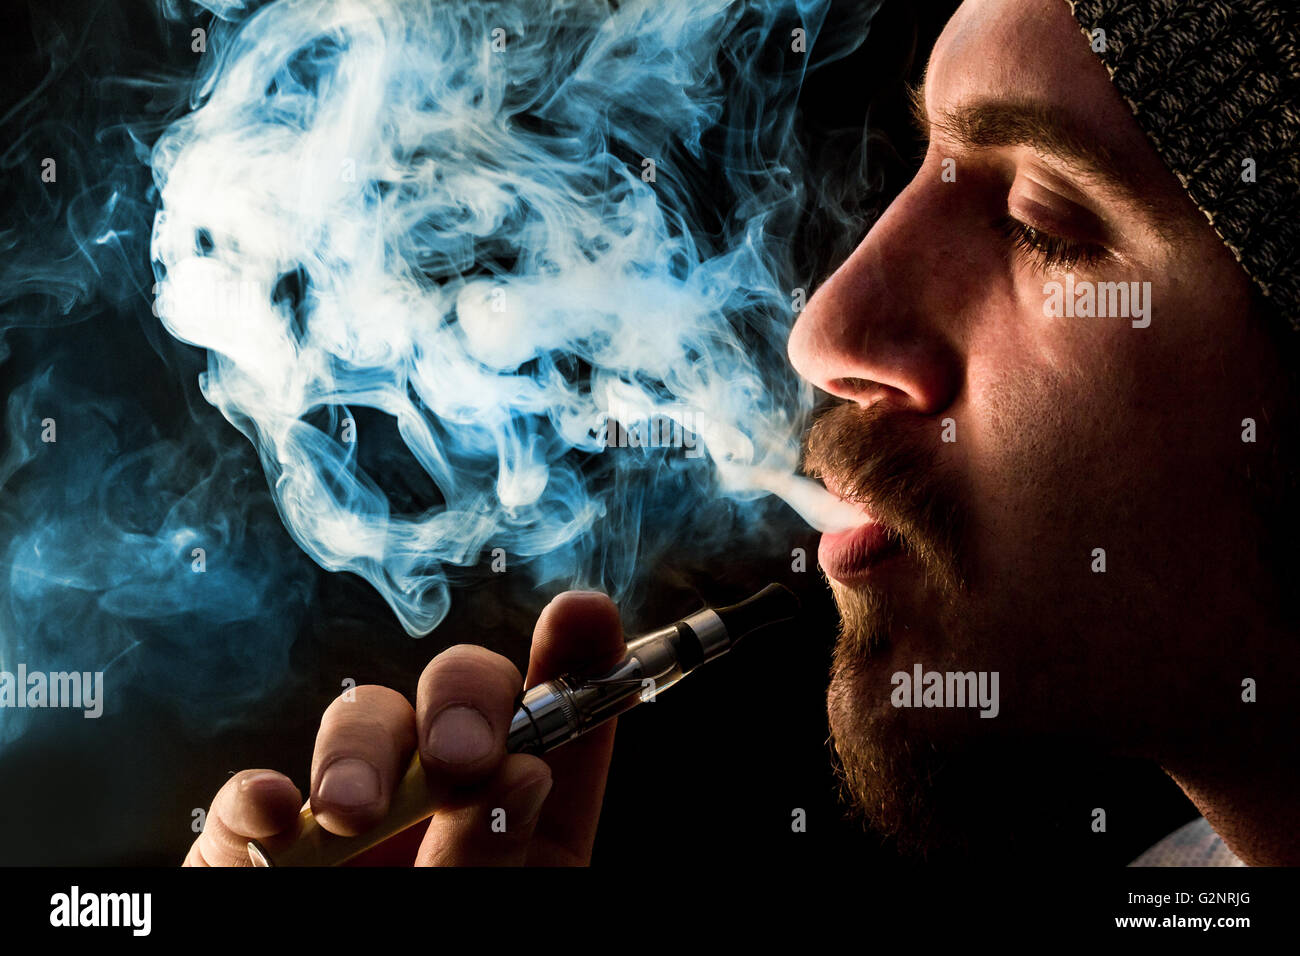 Dramatic lighting bearded man smokes a vape e-cigarette - Stock Image